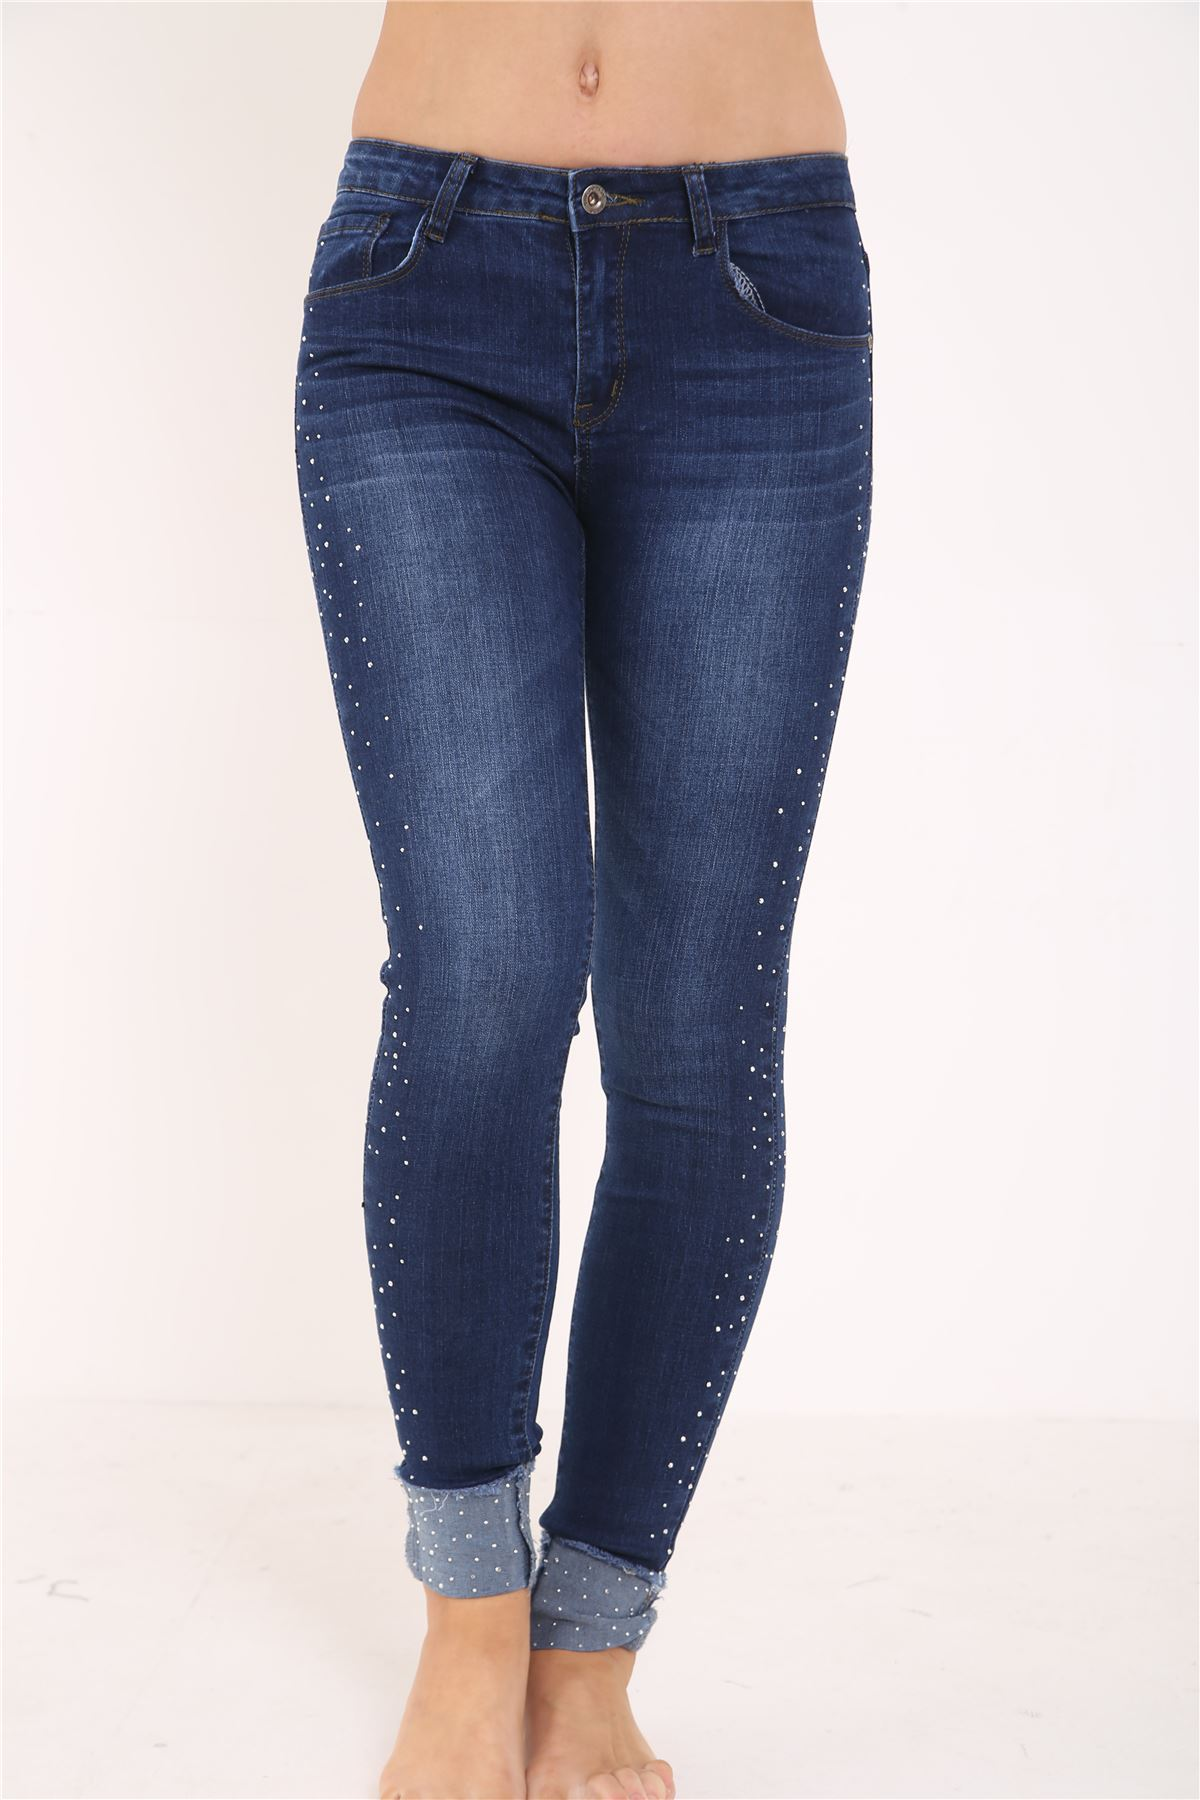 Discover high waisted and super high waisted jeans at ASOS. Shop from a range of skinny, ankle, ripped and flared high waisted jean styles from ASOS. Missguided Petite Vice High Waisted Super Stretch Skinny Jean. $ ASOS DESIGN Petite Ridley high waist skinny jeans in flat blue wash.